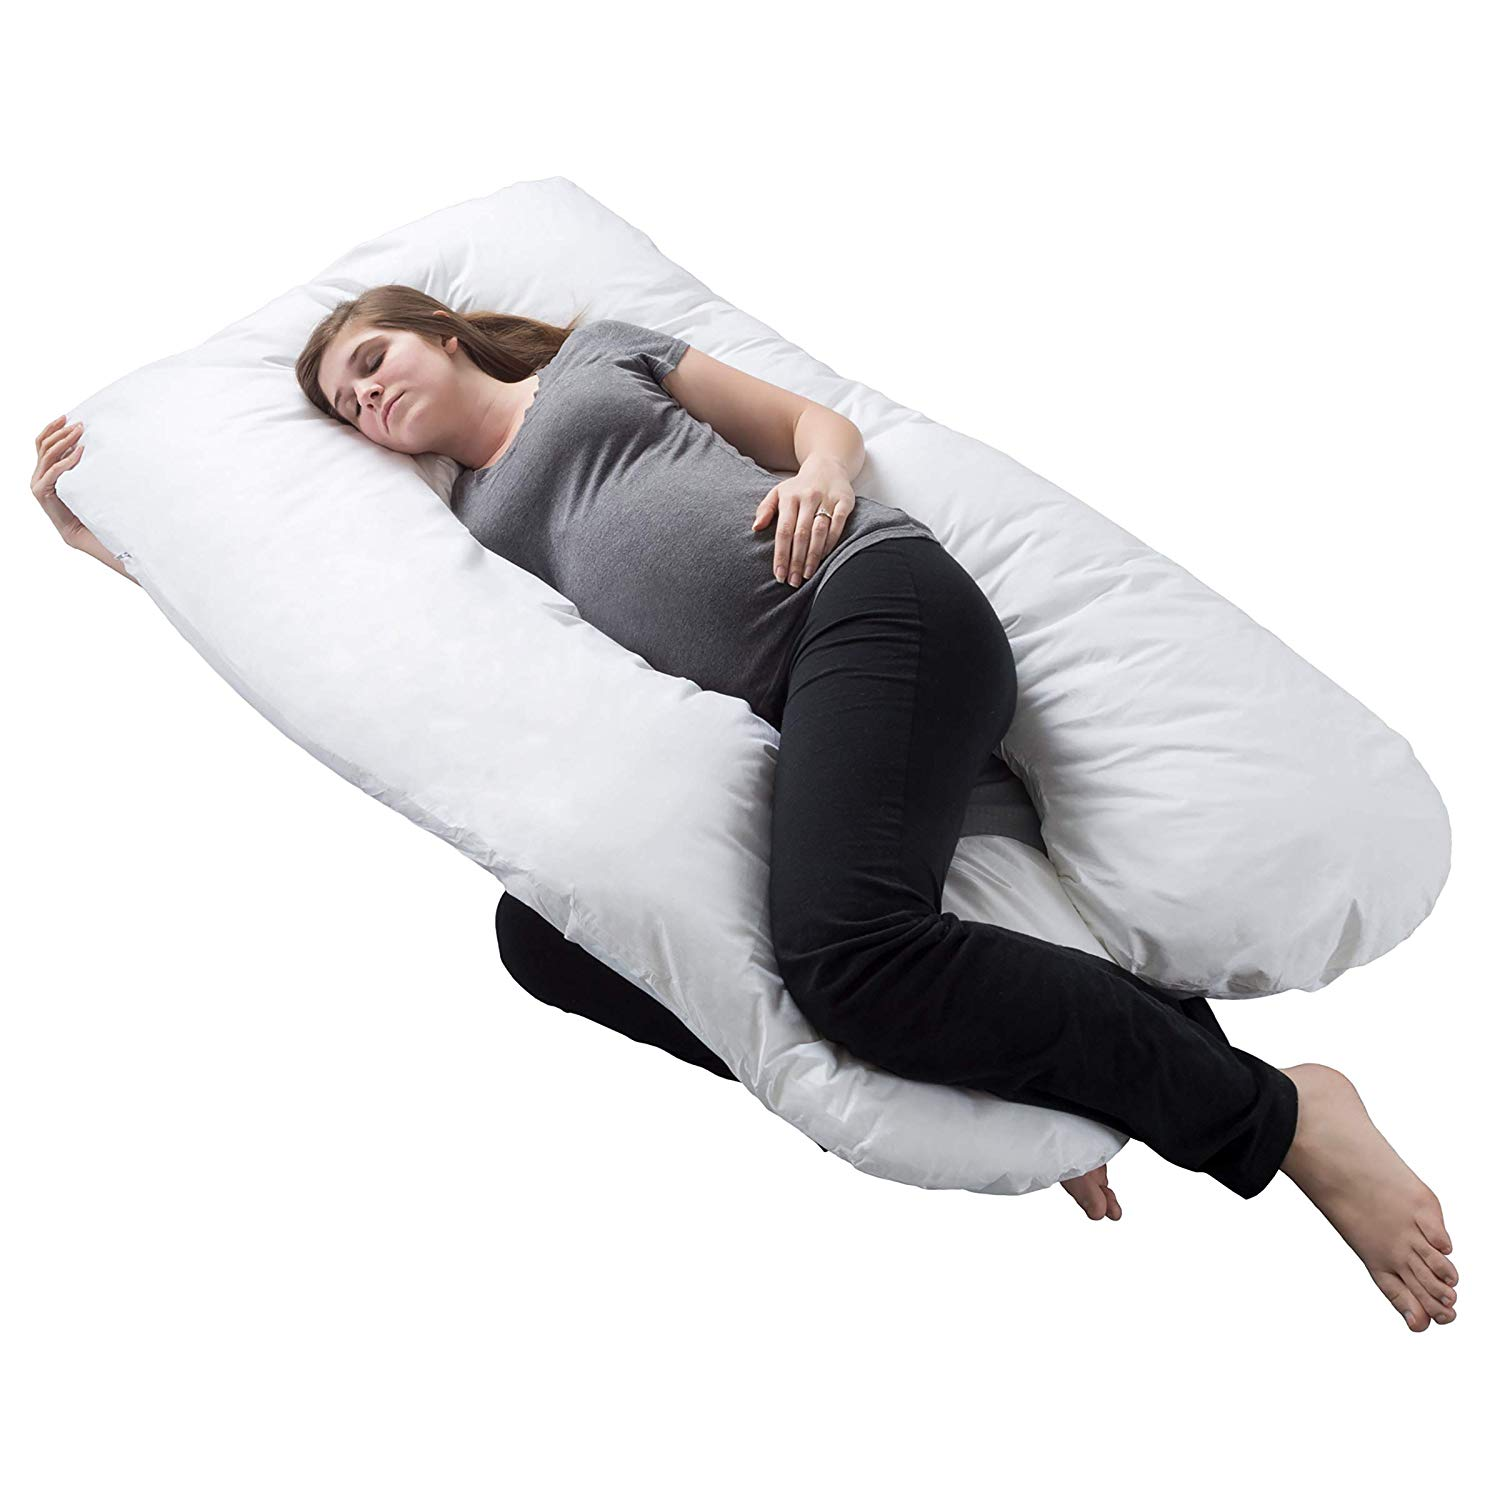 Trademark GLB Full Body Maternity Pillow